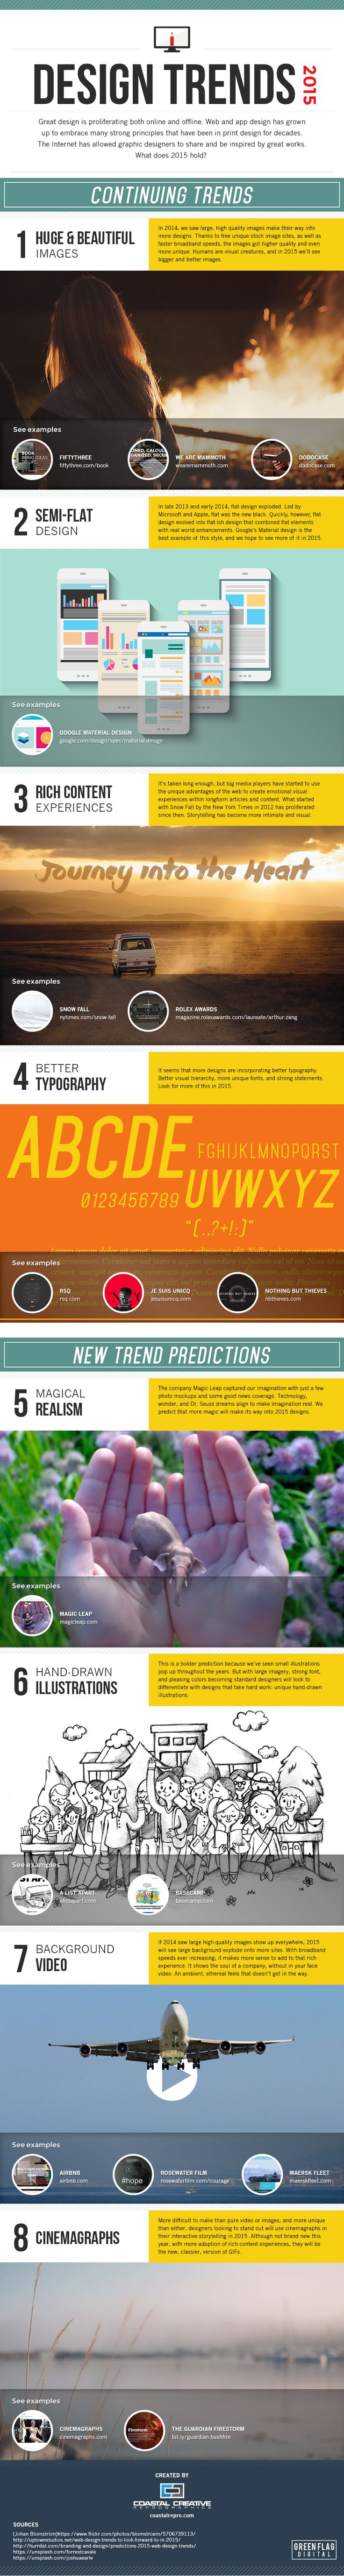 8 Design Trends for 2015 #infographic #GraphicDesign #Design #WebDesign